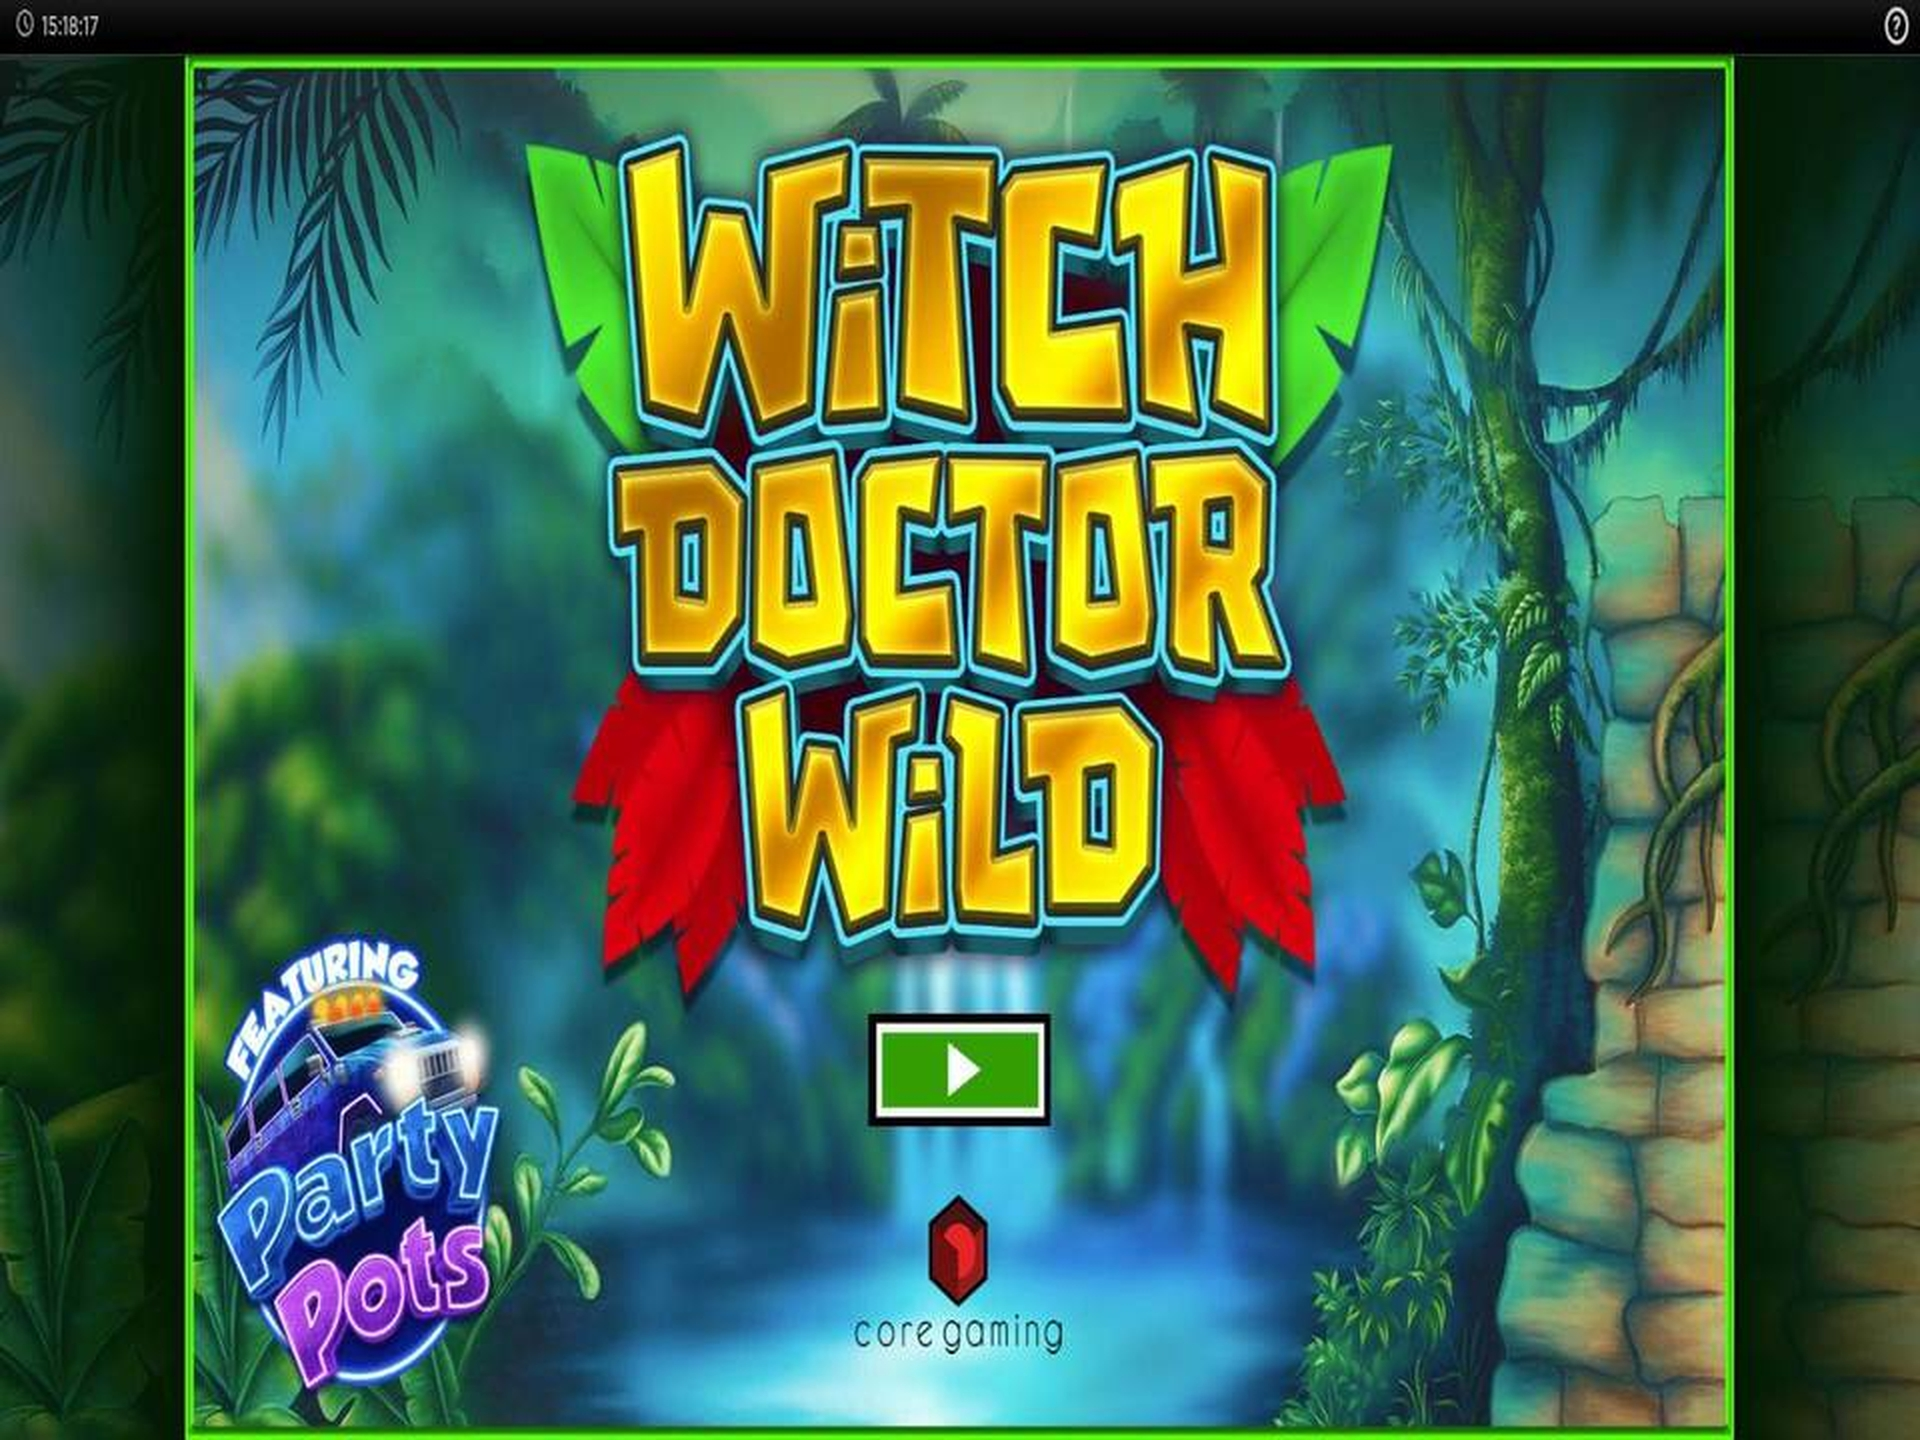 The Witch Doctor Wild Online Slot Demo Game by CORE Gaming